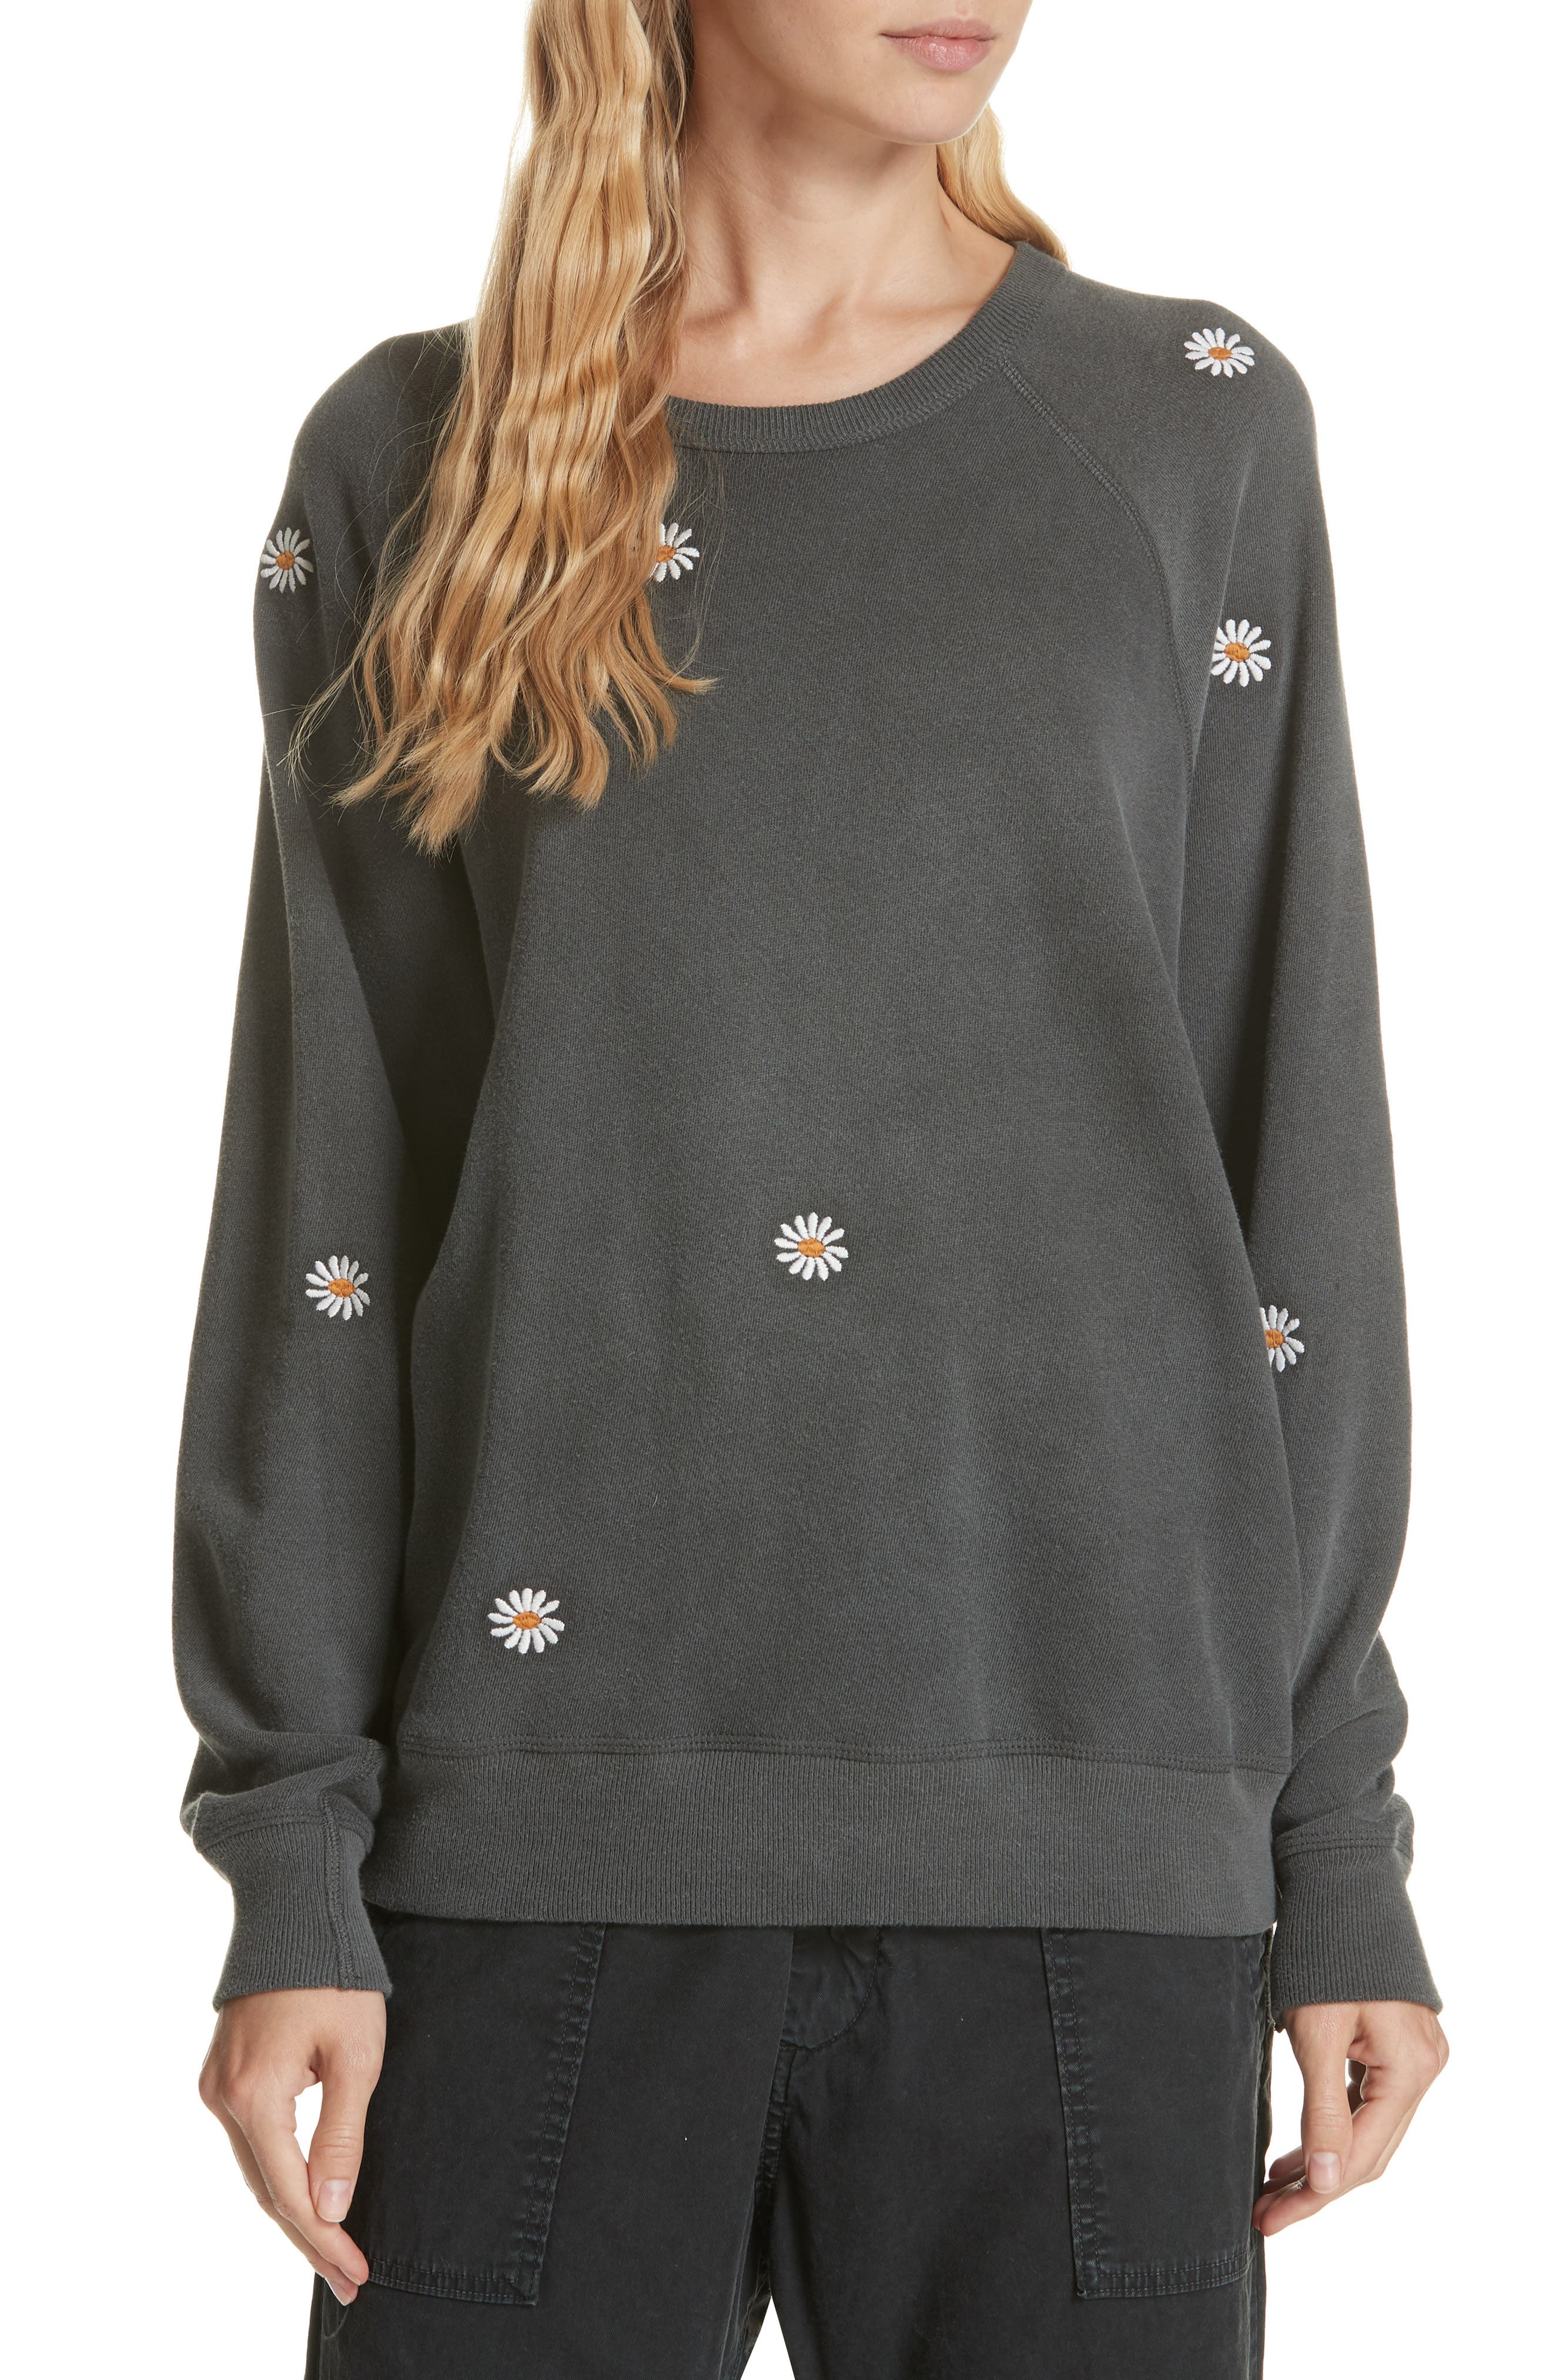 The Daisy Embroidered College Sweatshirt,                             Main thumbnail 1, color,                             001